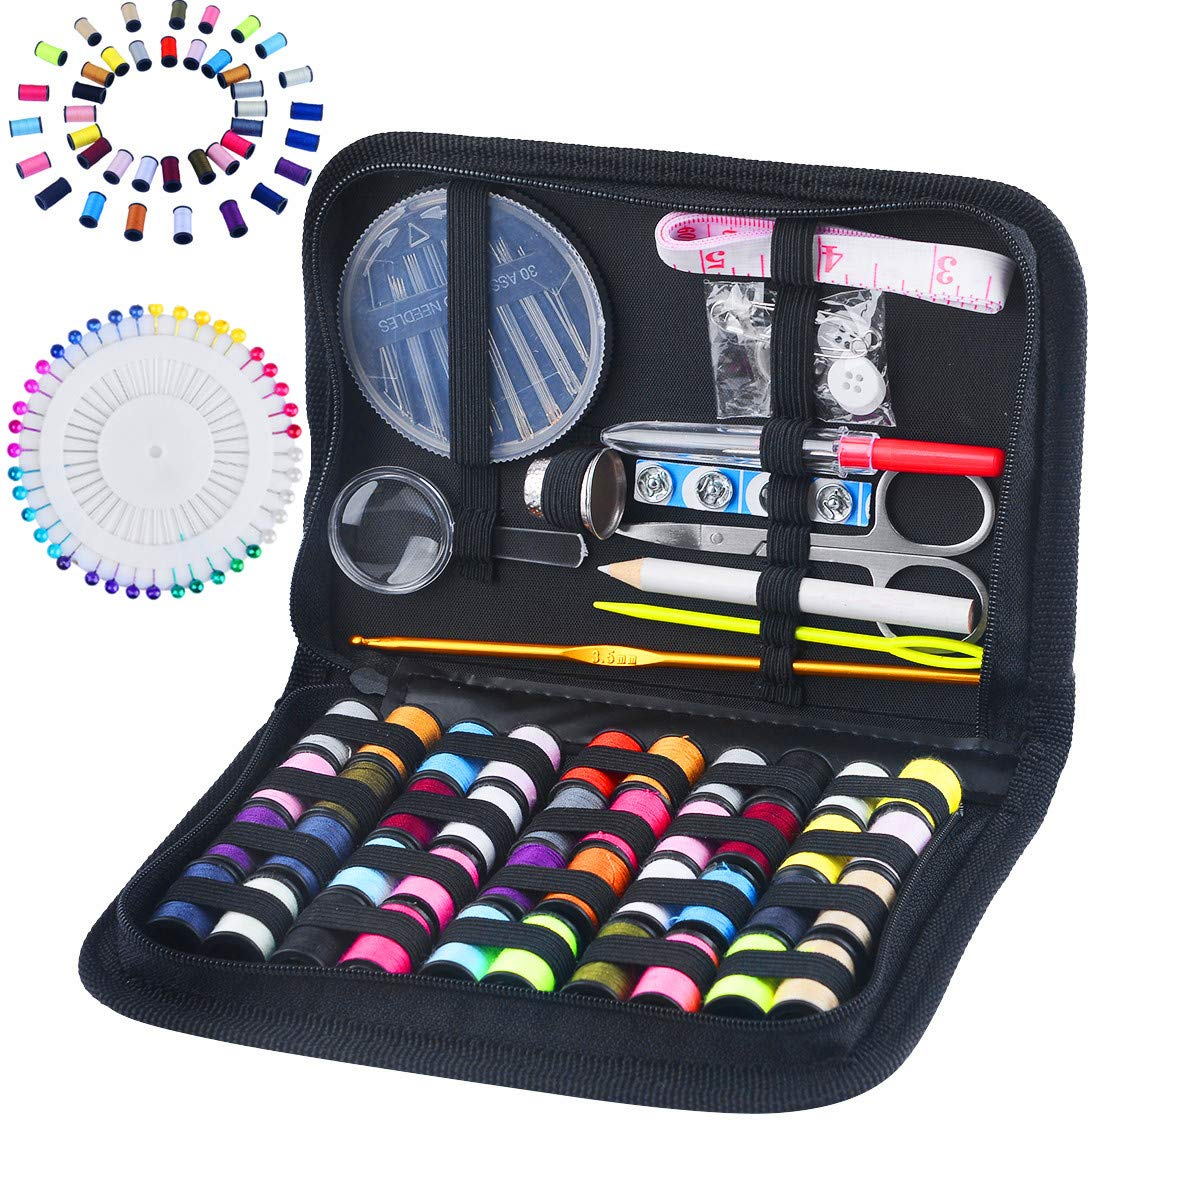 Southsun Mini Sewing Kit for Kids, Travel, Emergency, Sewing Supplies with Scissors, Thimble, Thread, Needles, Tape Measure, Carrying Case and Accessories